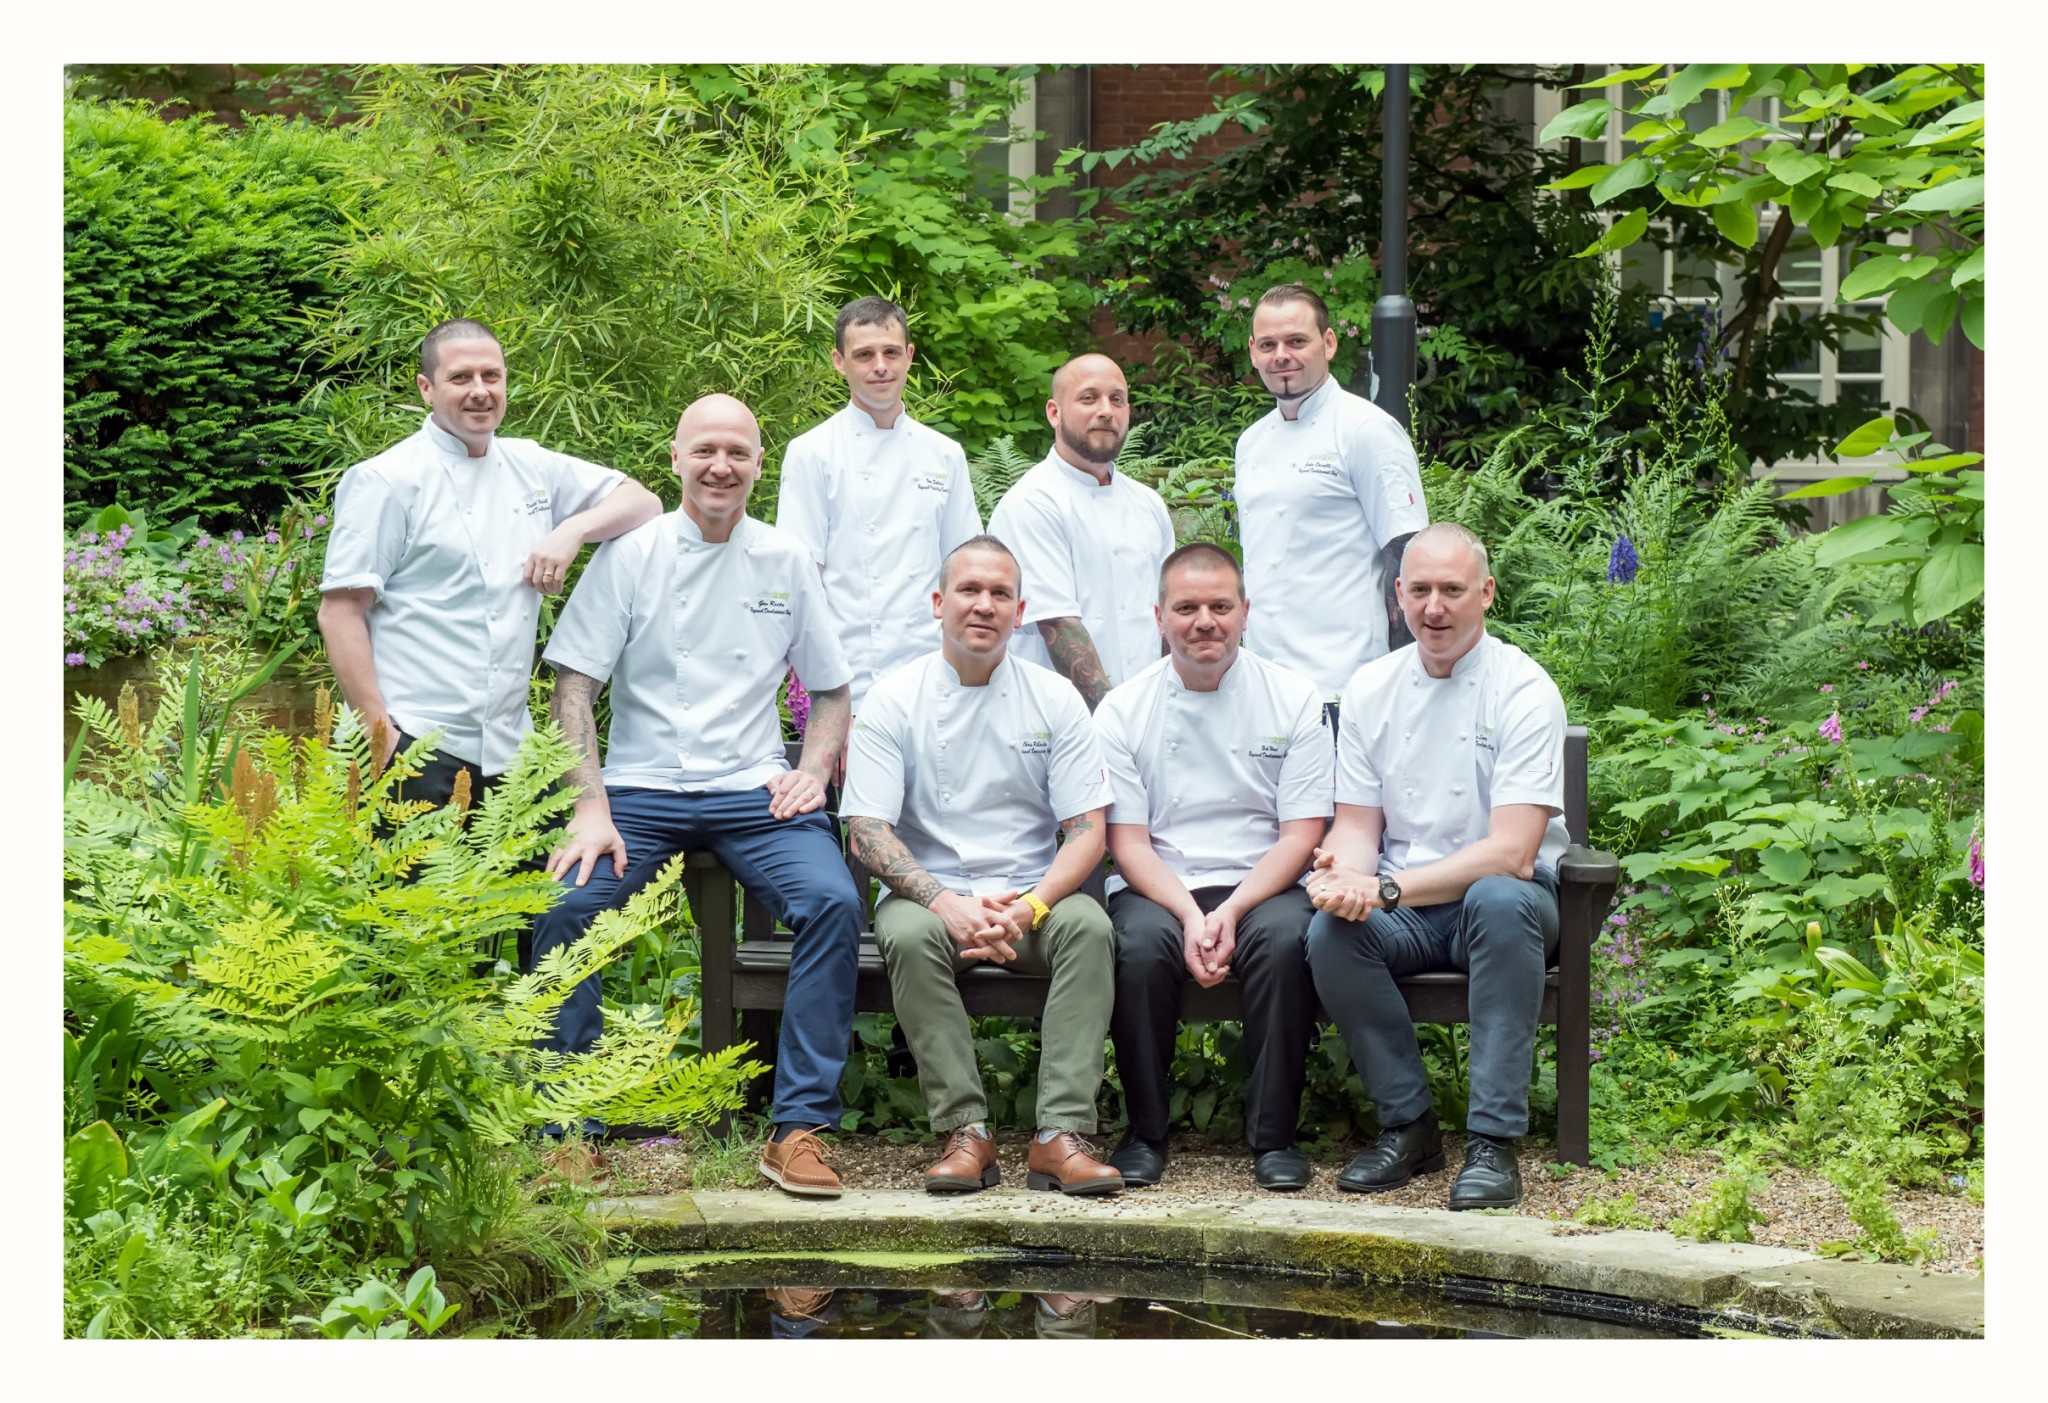 Chef Photography for Contract Catering Company Baxterstorey